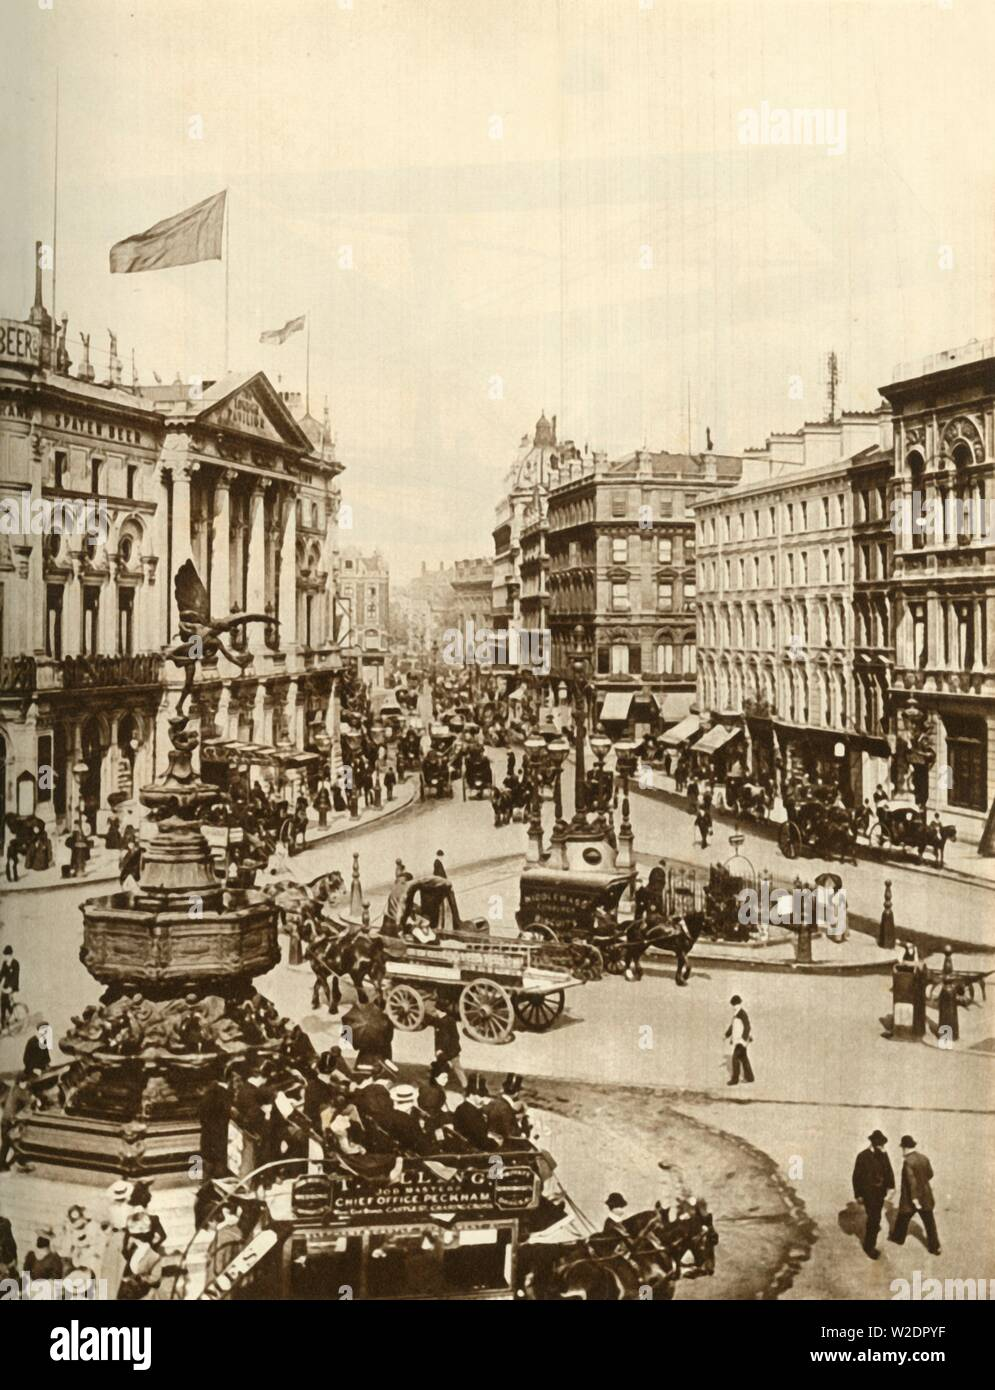 """Statue of Eros at Piccadilly Circus, London, c1910, (1935). Busy thoroughfare in the centre of London, with the London Pavilion theatre on the left, and an open-topped horse-drawn bus in the foreground. From """"The Silver Jubilee Book - The Story of 25 Eventful Years in Pictures"""". [Odhams Press Ltd., London, 1935] - Stock Image"""